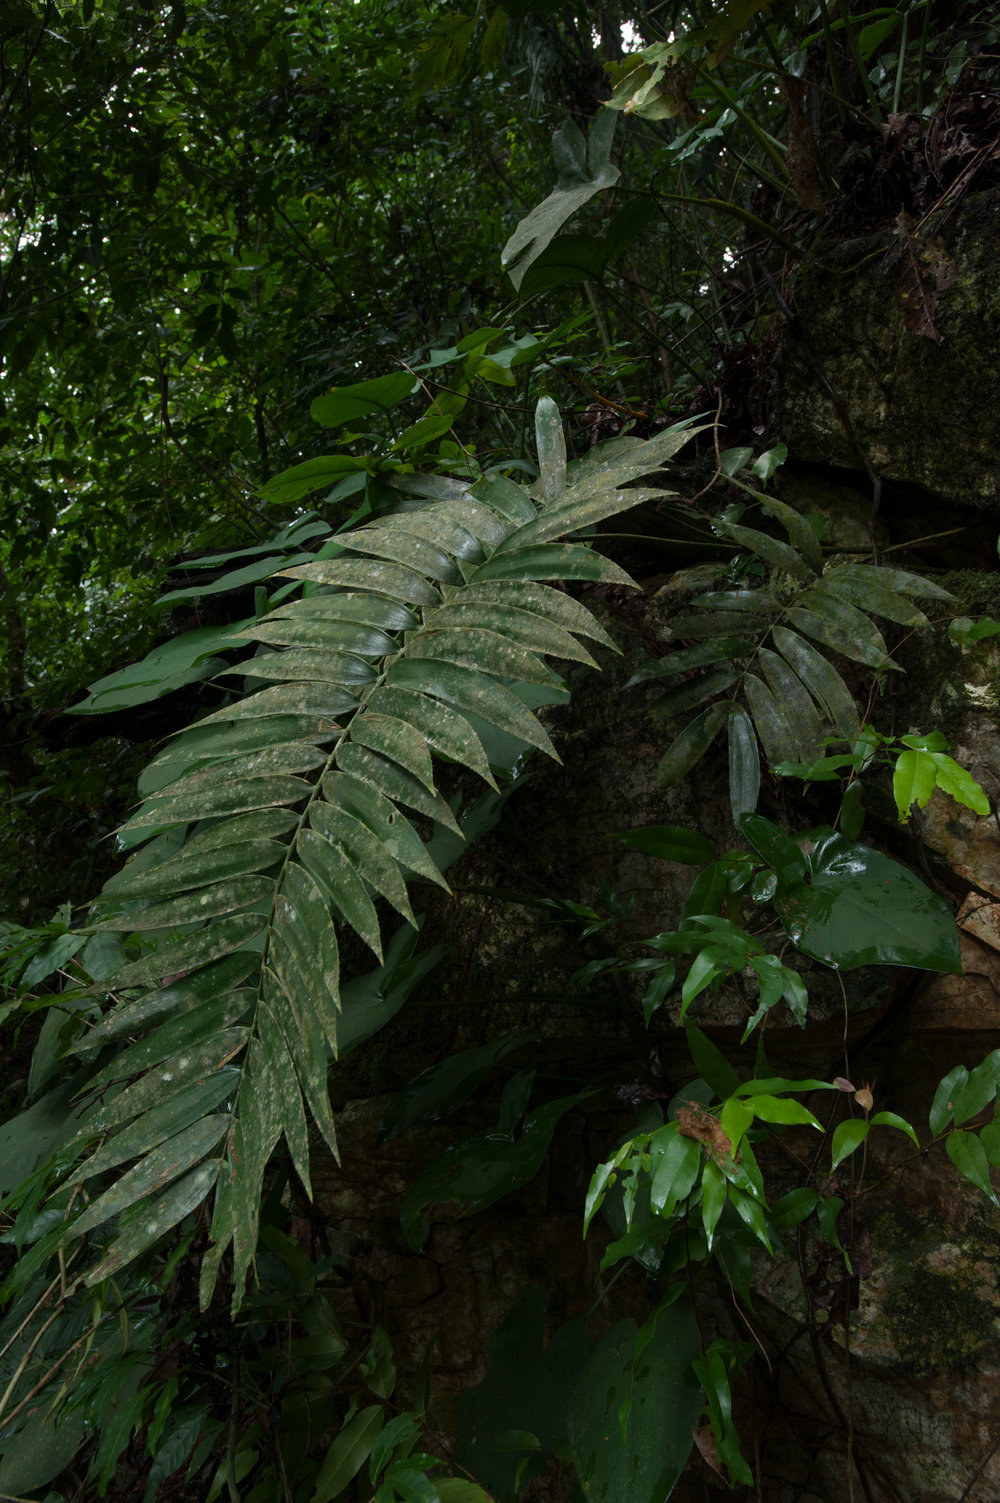 Zamia sandovalii  in nature in northern Honduras, showing its epipetric habit and sparse canopy. Image: F. Muller.